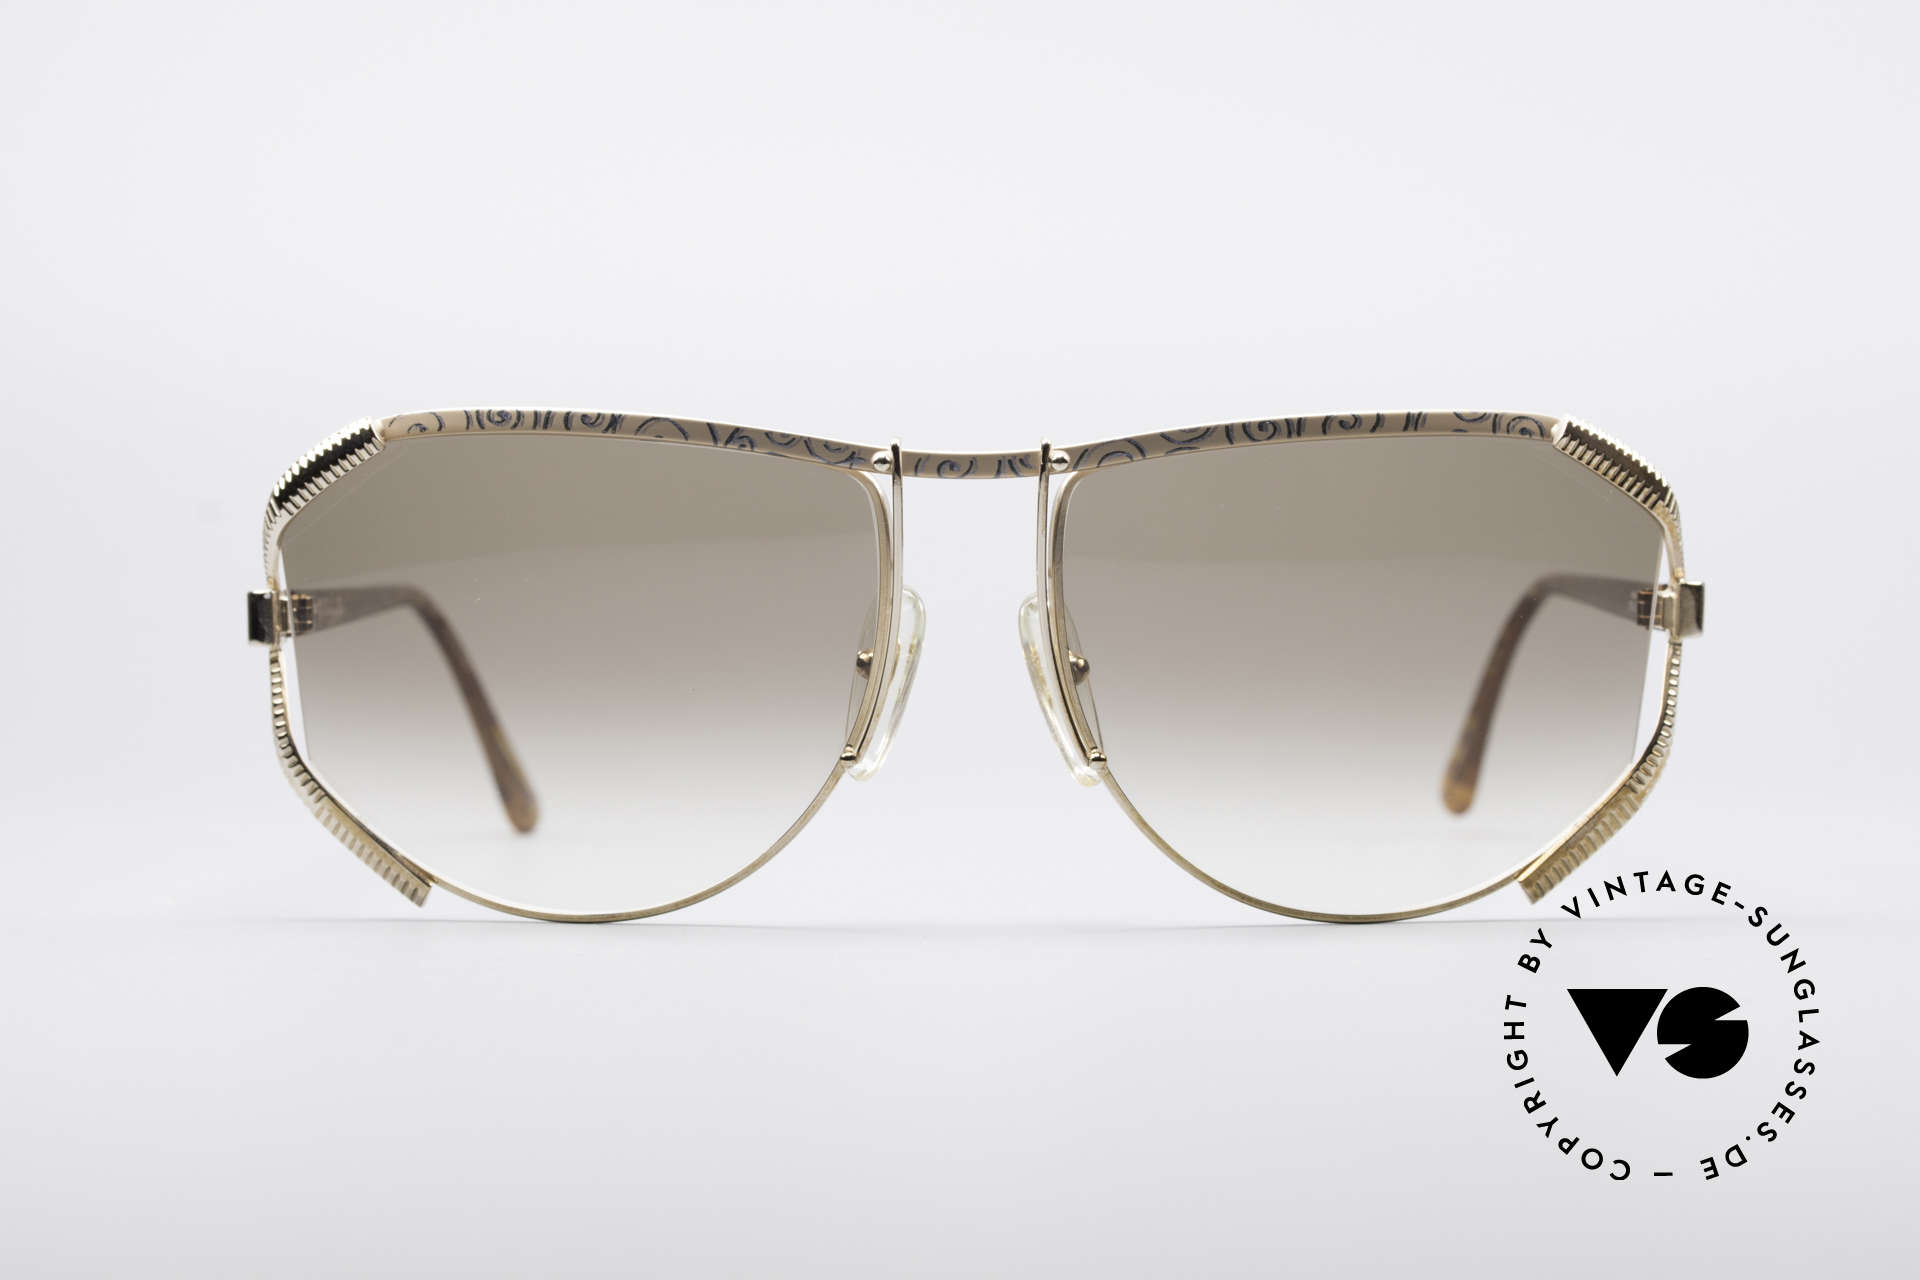 Christian Dior 2609 90's Designer Shades, very sturdy metal frame, meets highest expectations, Made for Women